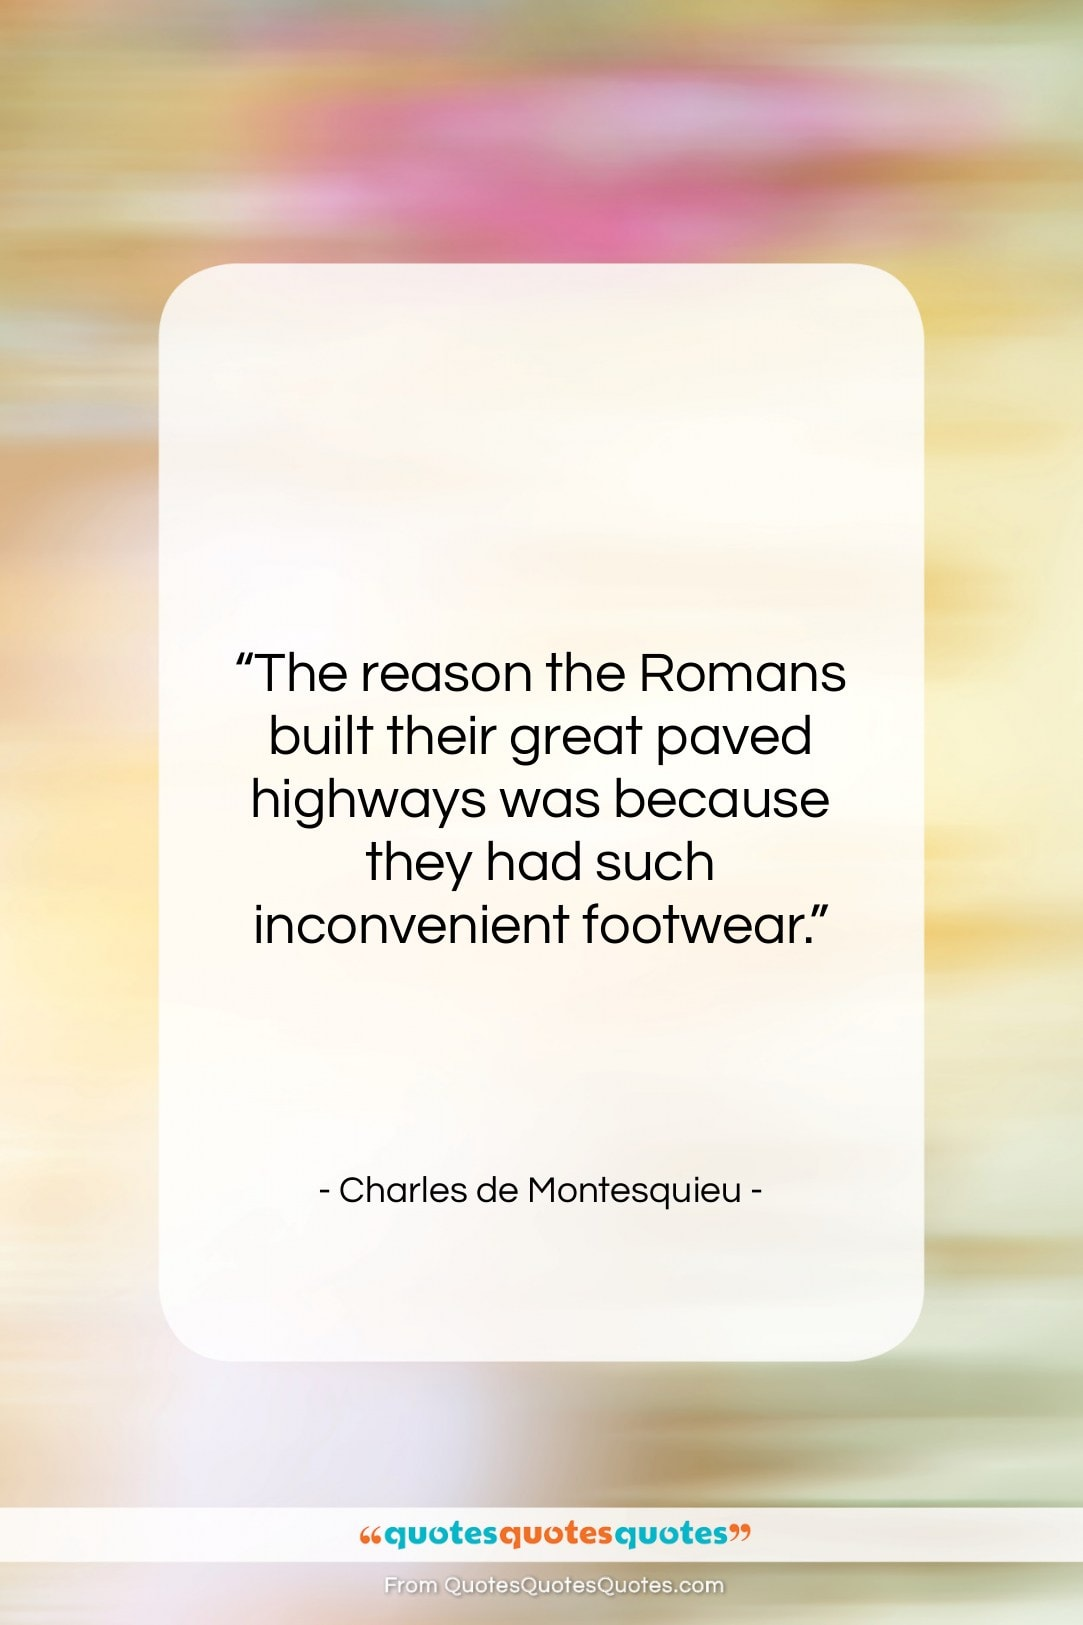 """Charles de Montesquieu quote: """"The reason the Romans built their great…""""- at QuotesQuotesQuotes.com"""